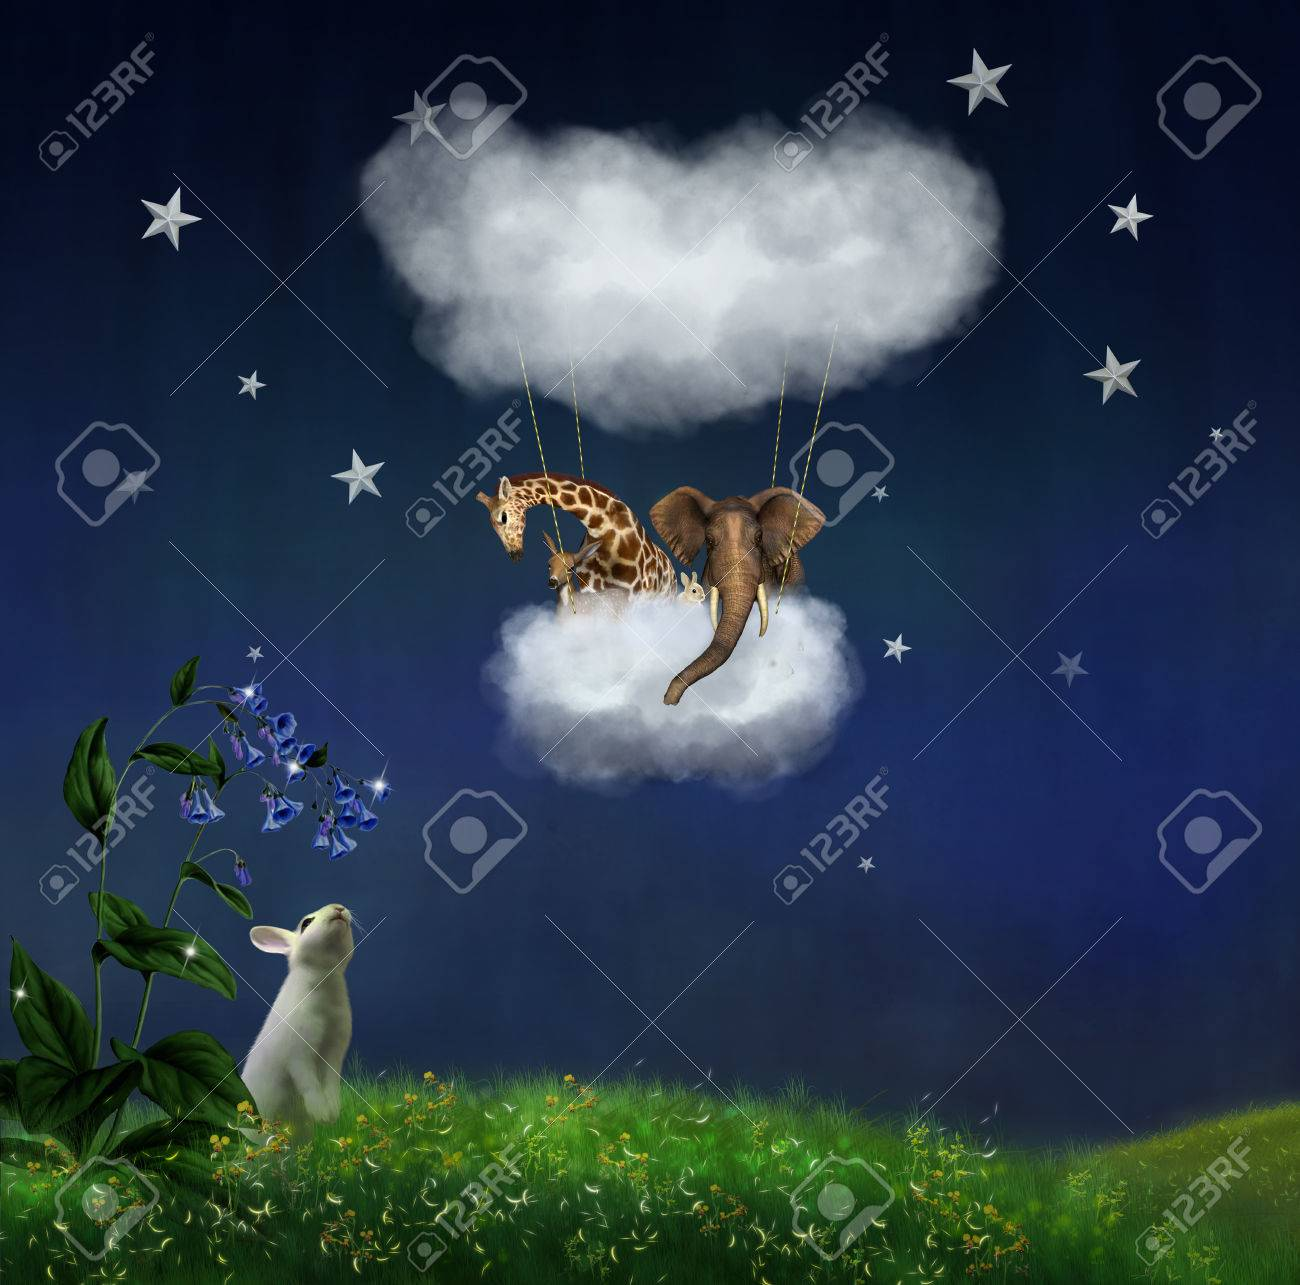 Animals floating in the clouds at night - 27612942